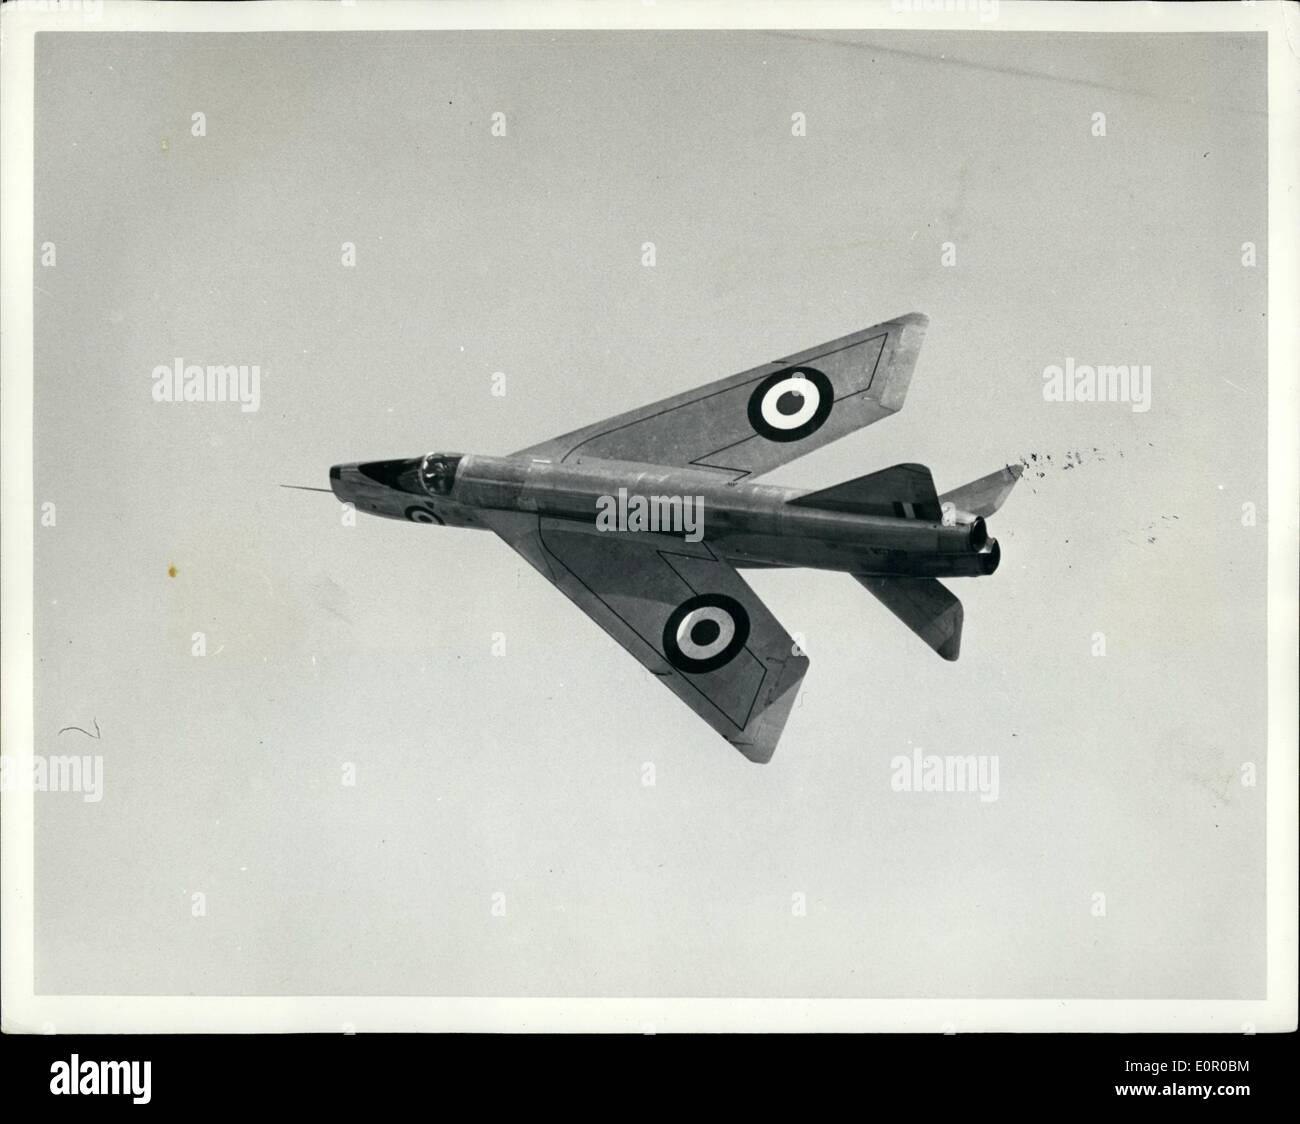 Jul. 07, 1957 - The English Electric P.1 Supersonic Fighter which was shown in public for the first time to day at Warton aerodrome, Lancashire. the P.1 has been ordered for the Royal air force, and is being made at the Preston works of the English Electric Company Ltd the Aircraft has flown faster than the world speed record of 1,132m.p. Comprehensive ground testing of the P.1.aircraft and its components have been carried out. this has included hundreds of hours ''flying'' in both low and high speed wind tunnels at warton and the stressing to destruction of a completed airframe - Stock Image